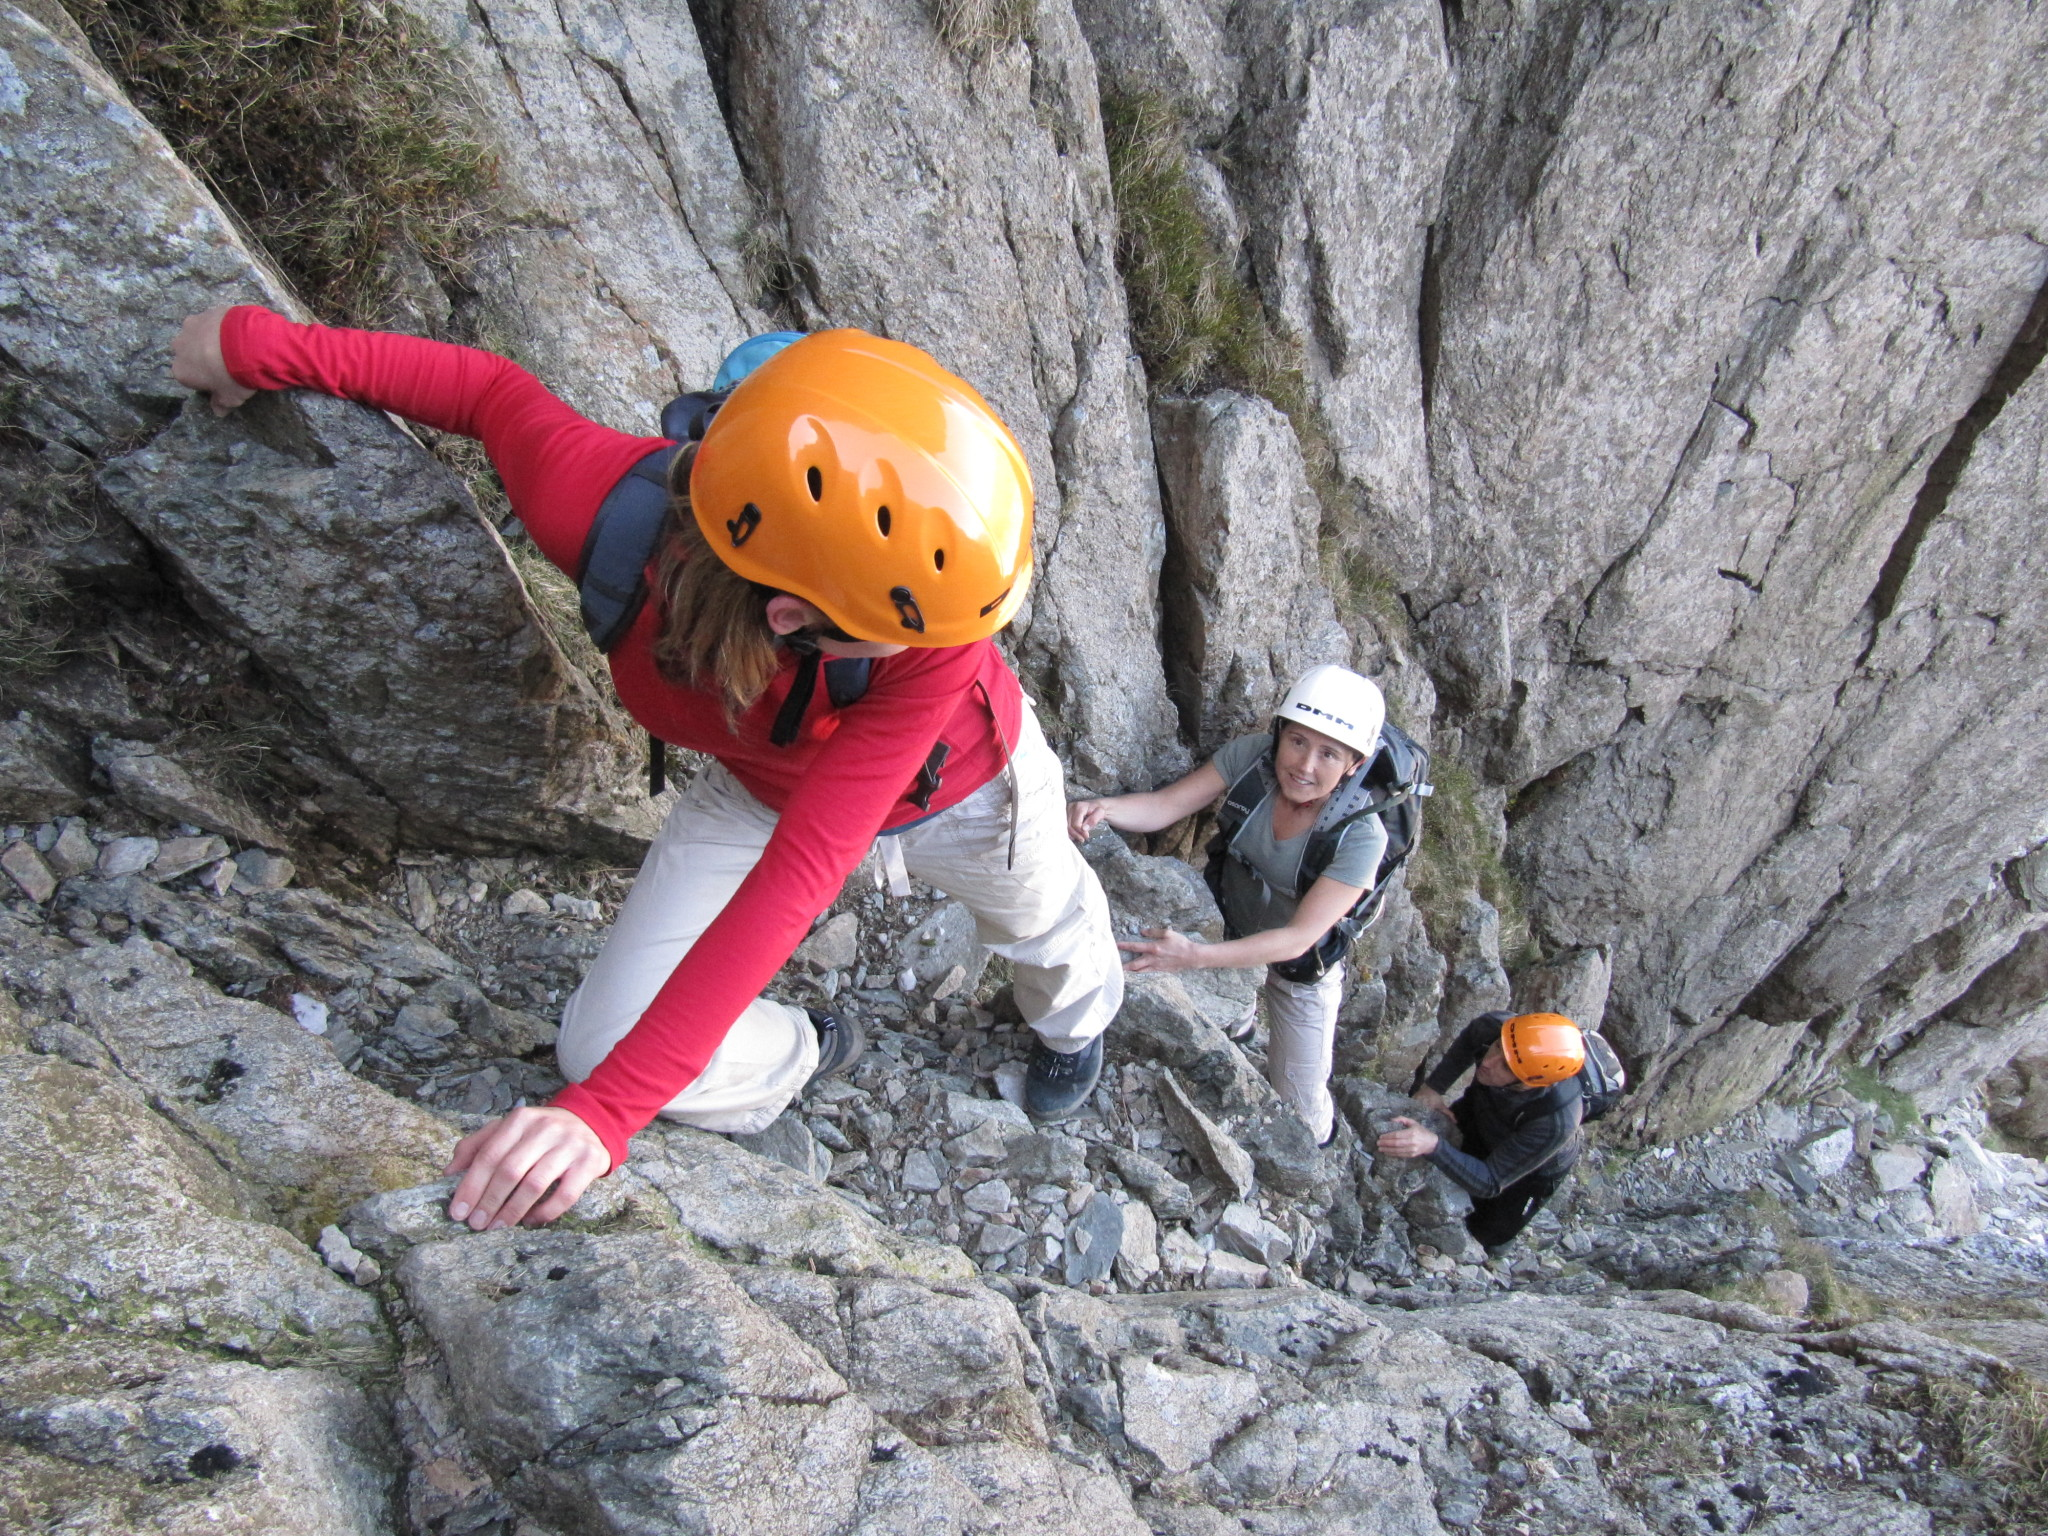 """During an introduction to scrambling course in Snowdonia, three scramblers climb Bristly Ridge, Glyder Fach, continuing from the north ridge of Tryfan"""" width="""